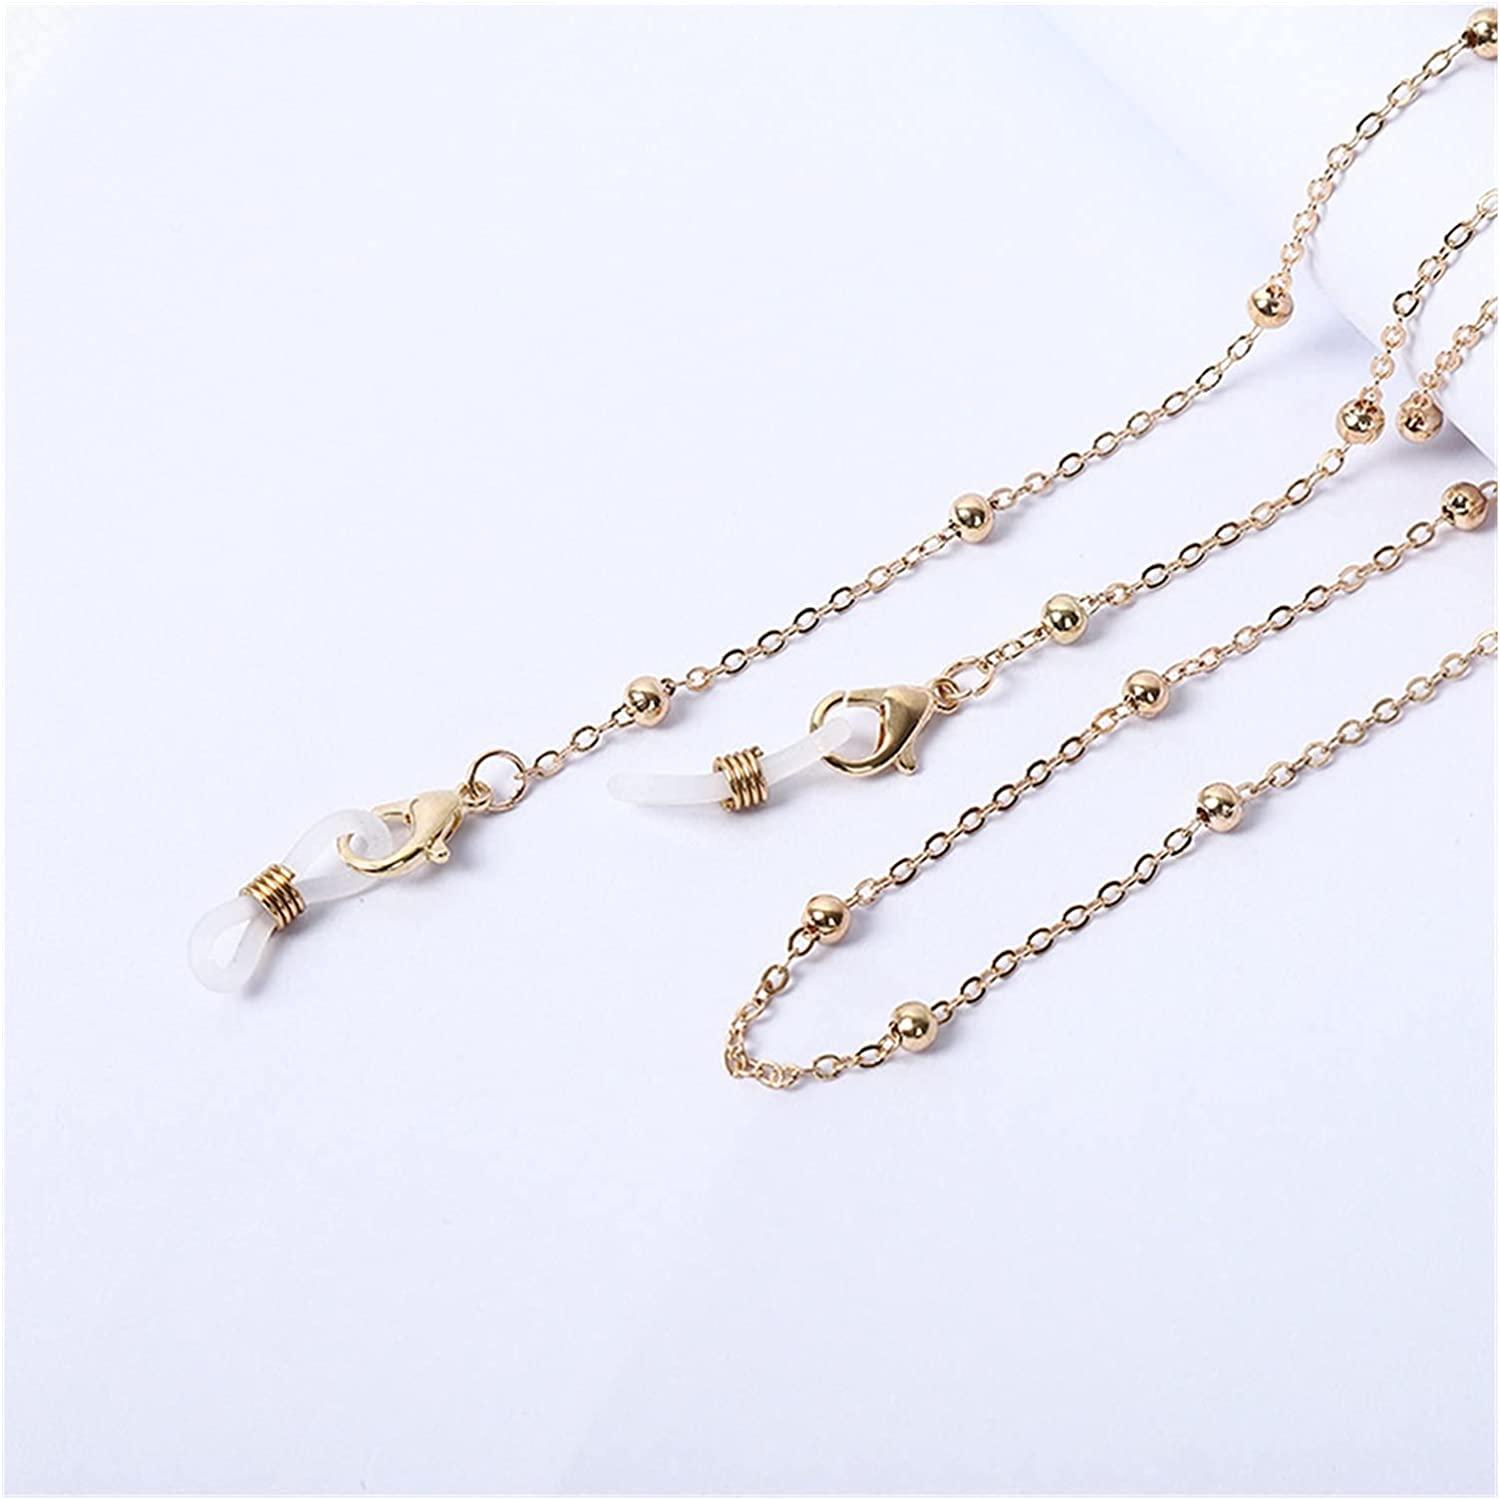 Eye Chain Sunglasses Masking Chains for Women Alloy Pearl Chain Eyeglasses Chains Lanyard Glass 2021 (Color : 1)